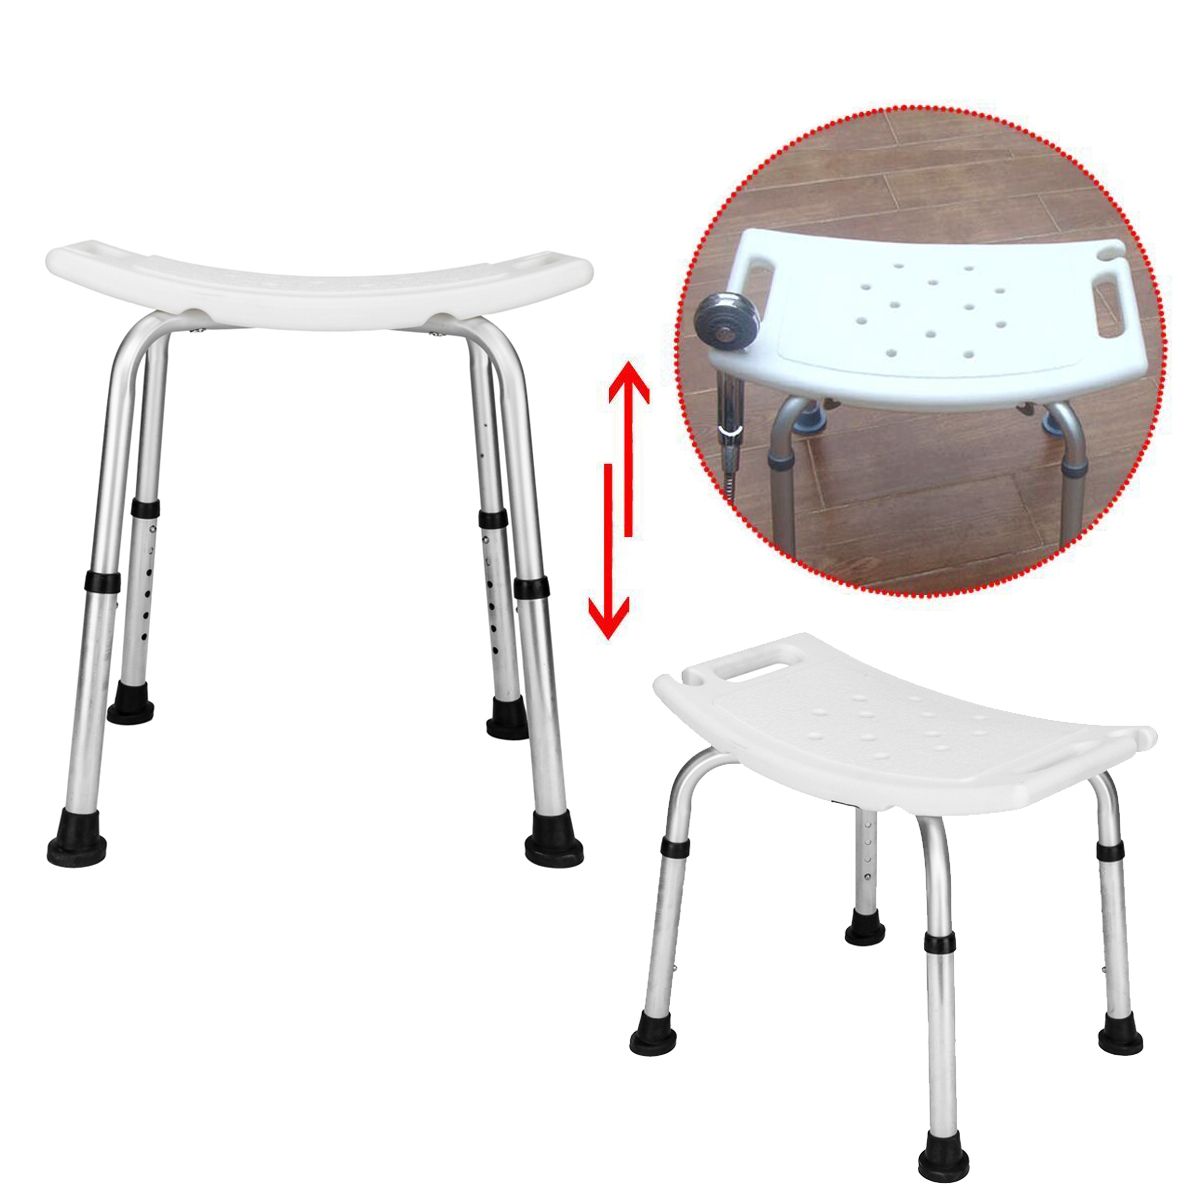 Details About Bath Shower Chair Adjustable Medical 6 Height Bench Bathtub Stool Seat New